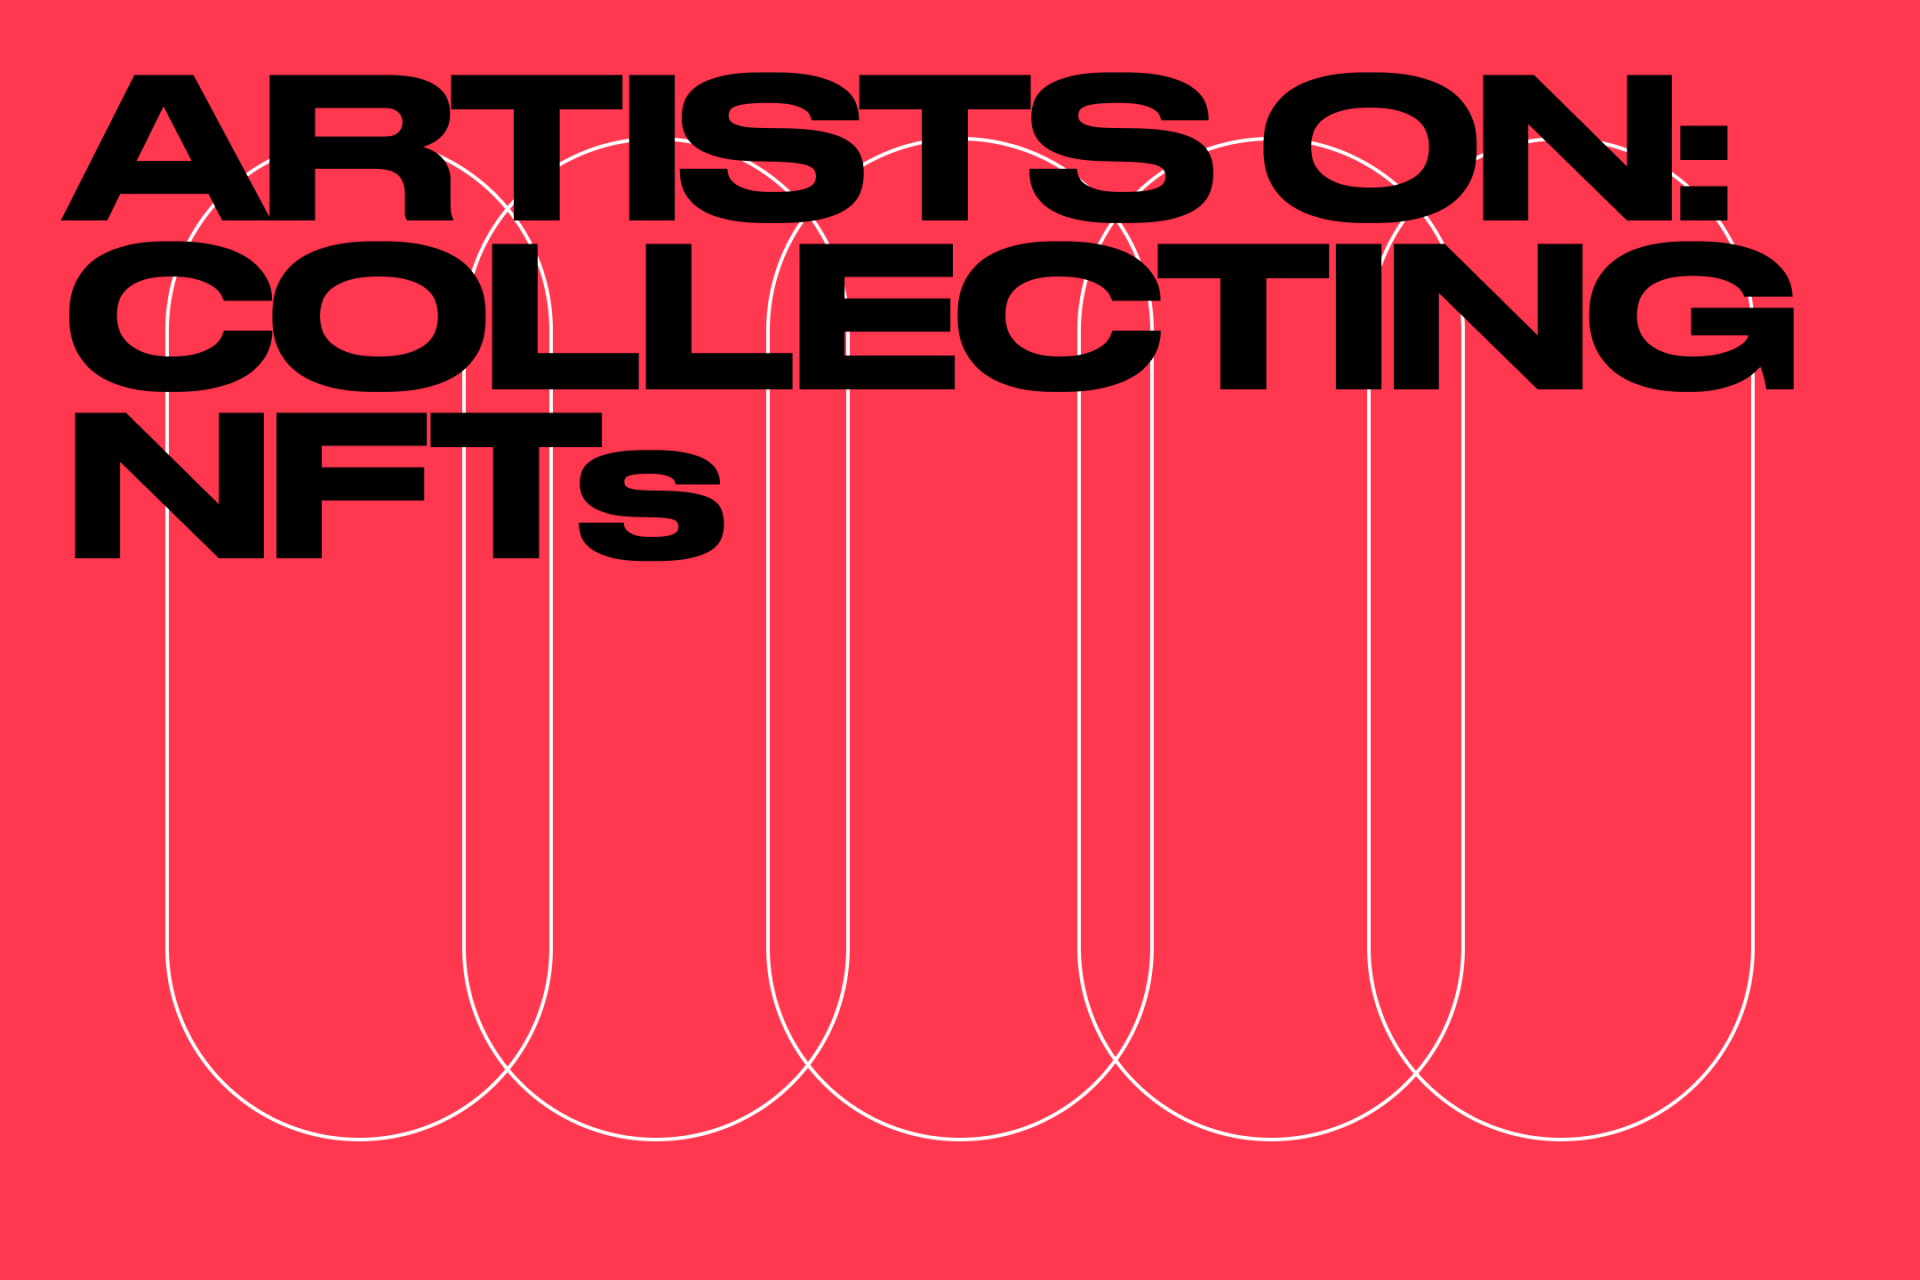 Why artists are collecting each other's NFTs.